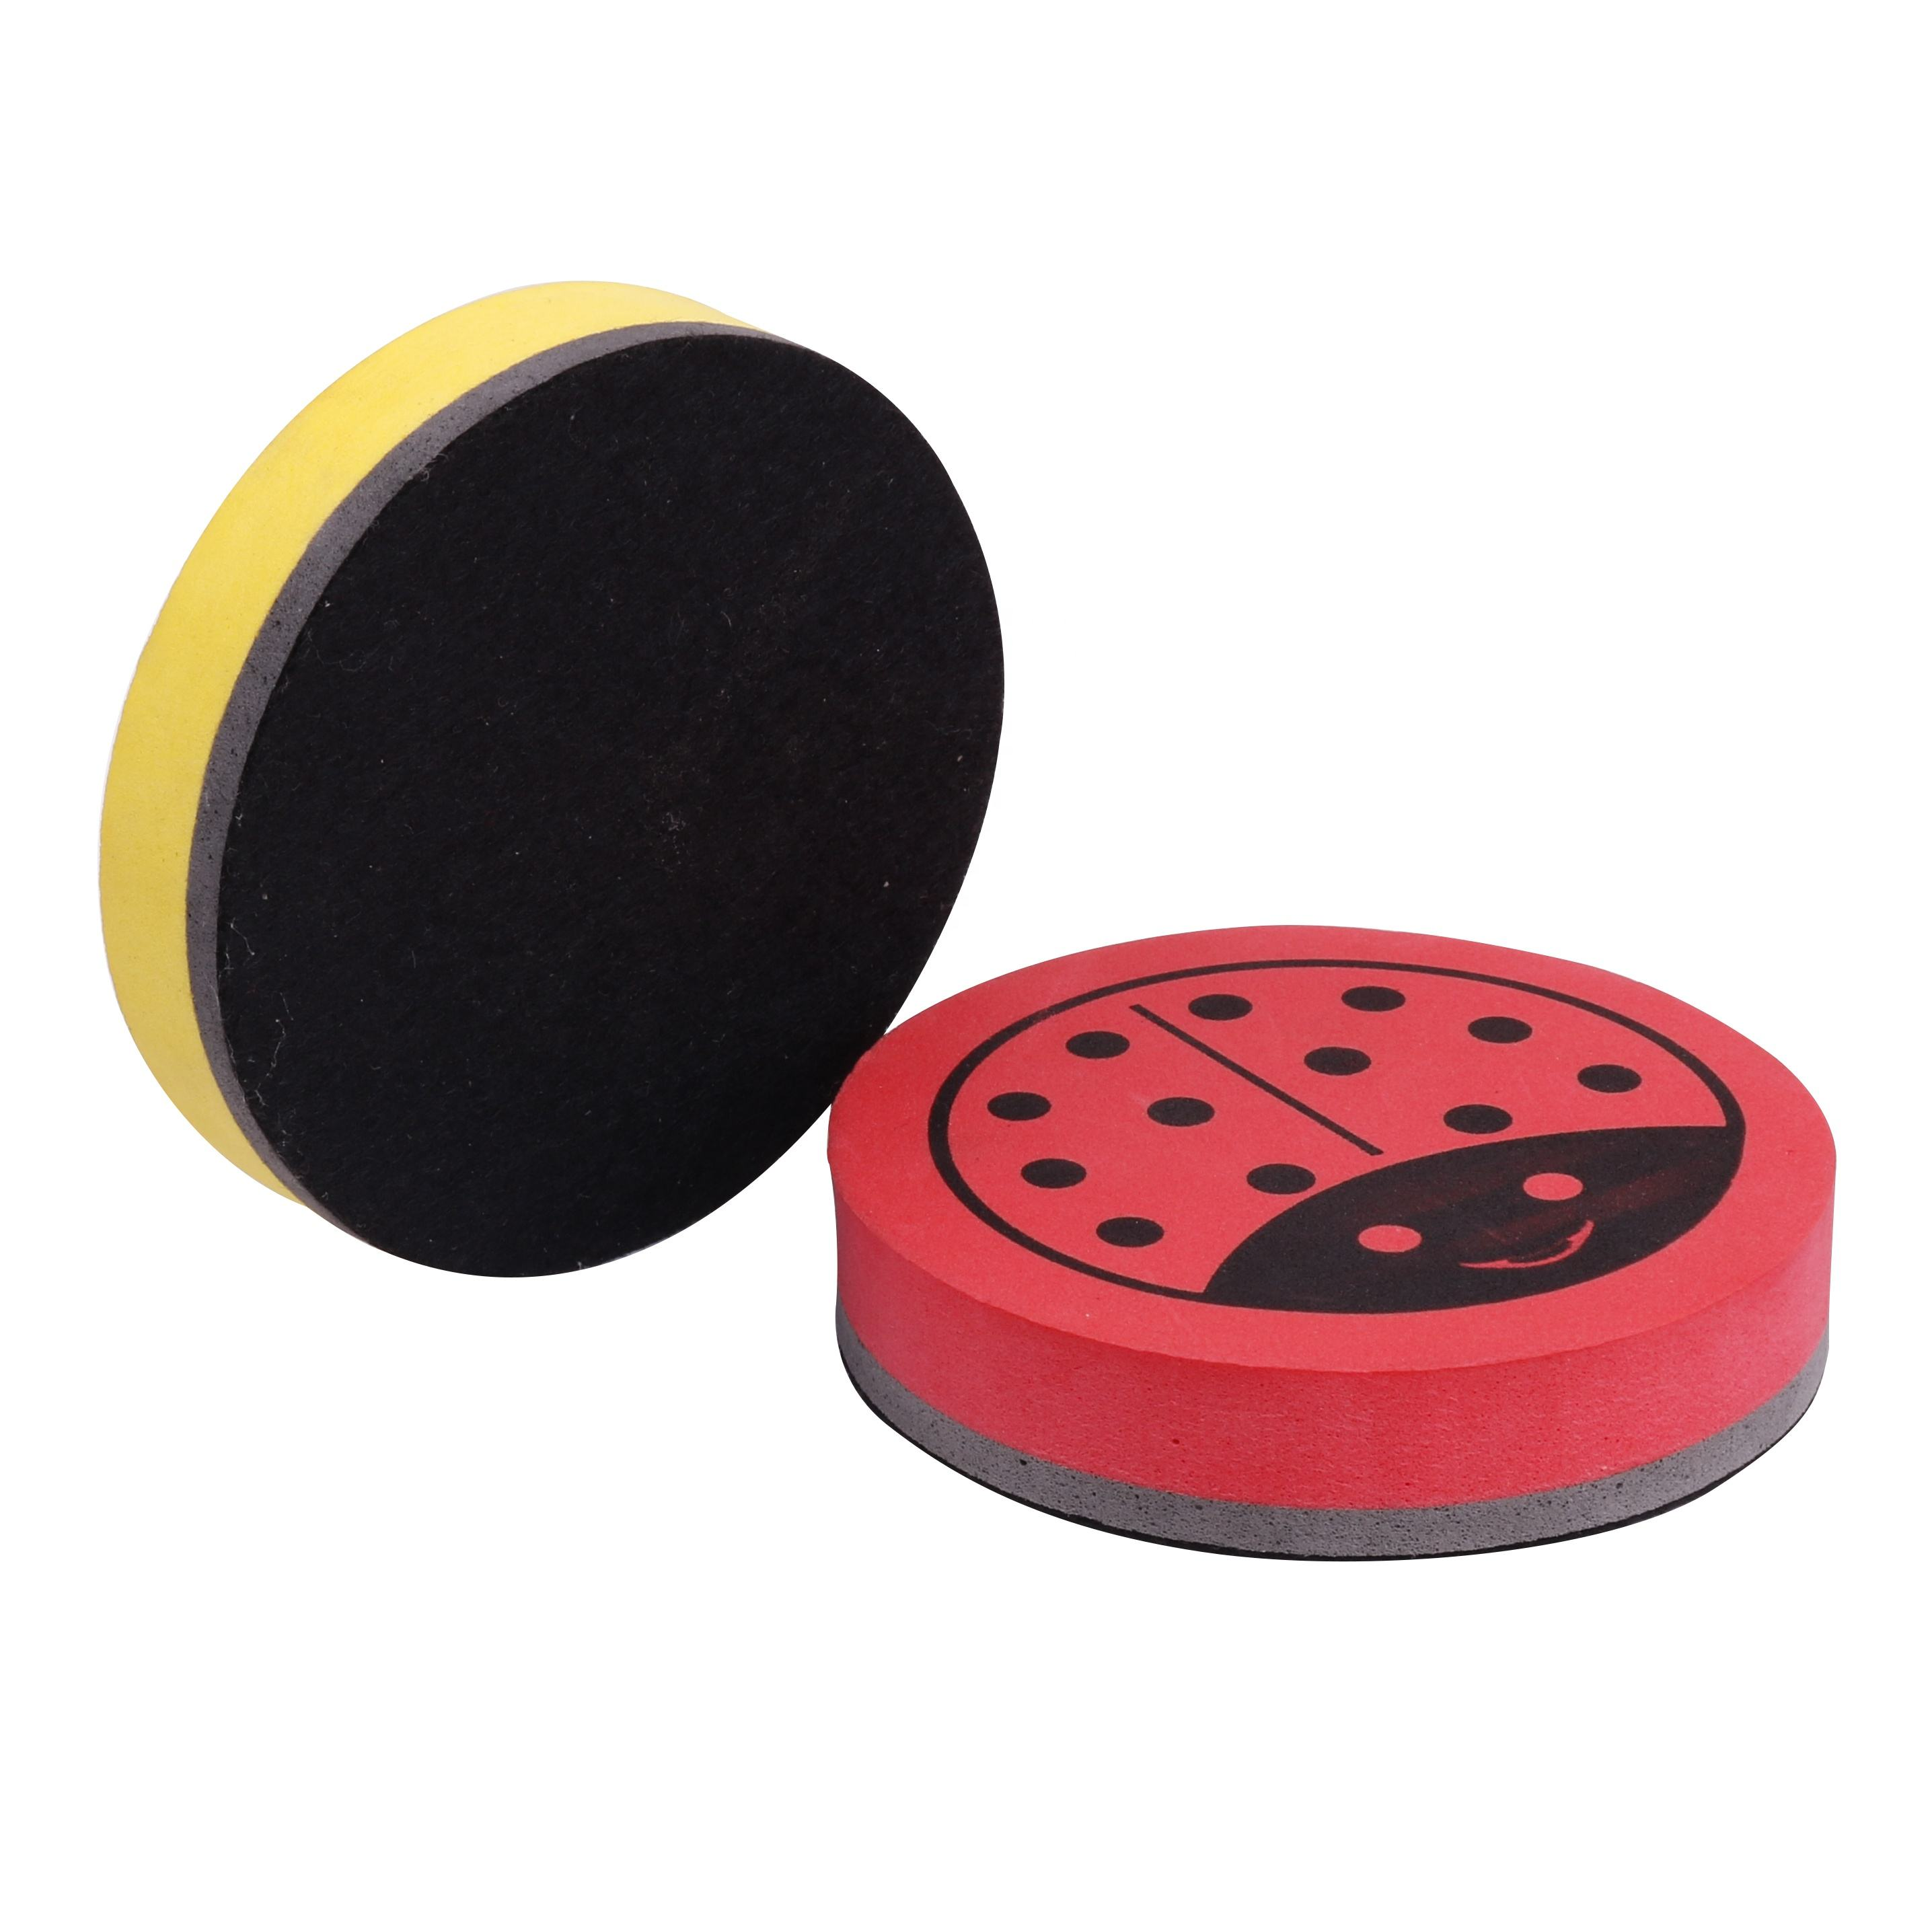 Cheap office stationery erasers. Round Shape Dry whiteboard eraser whiteboard dusters with magnet